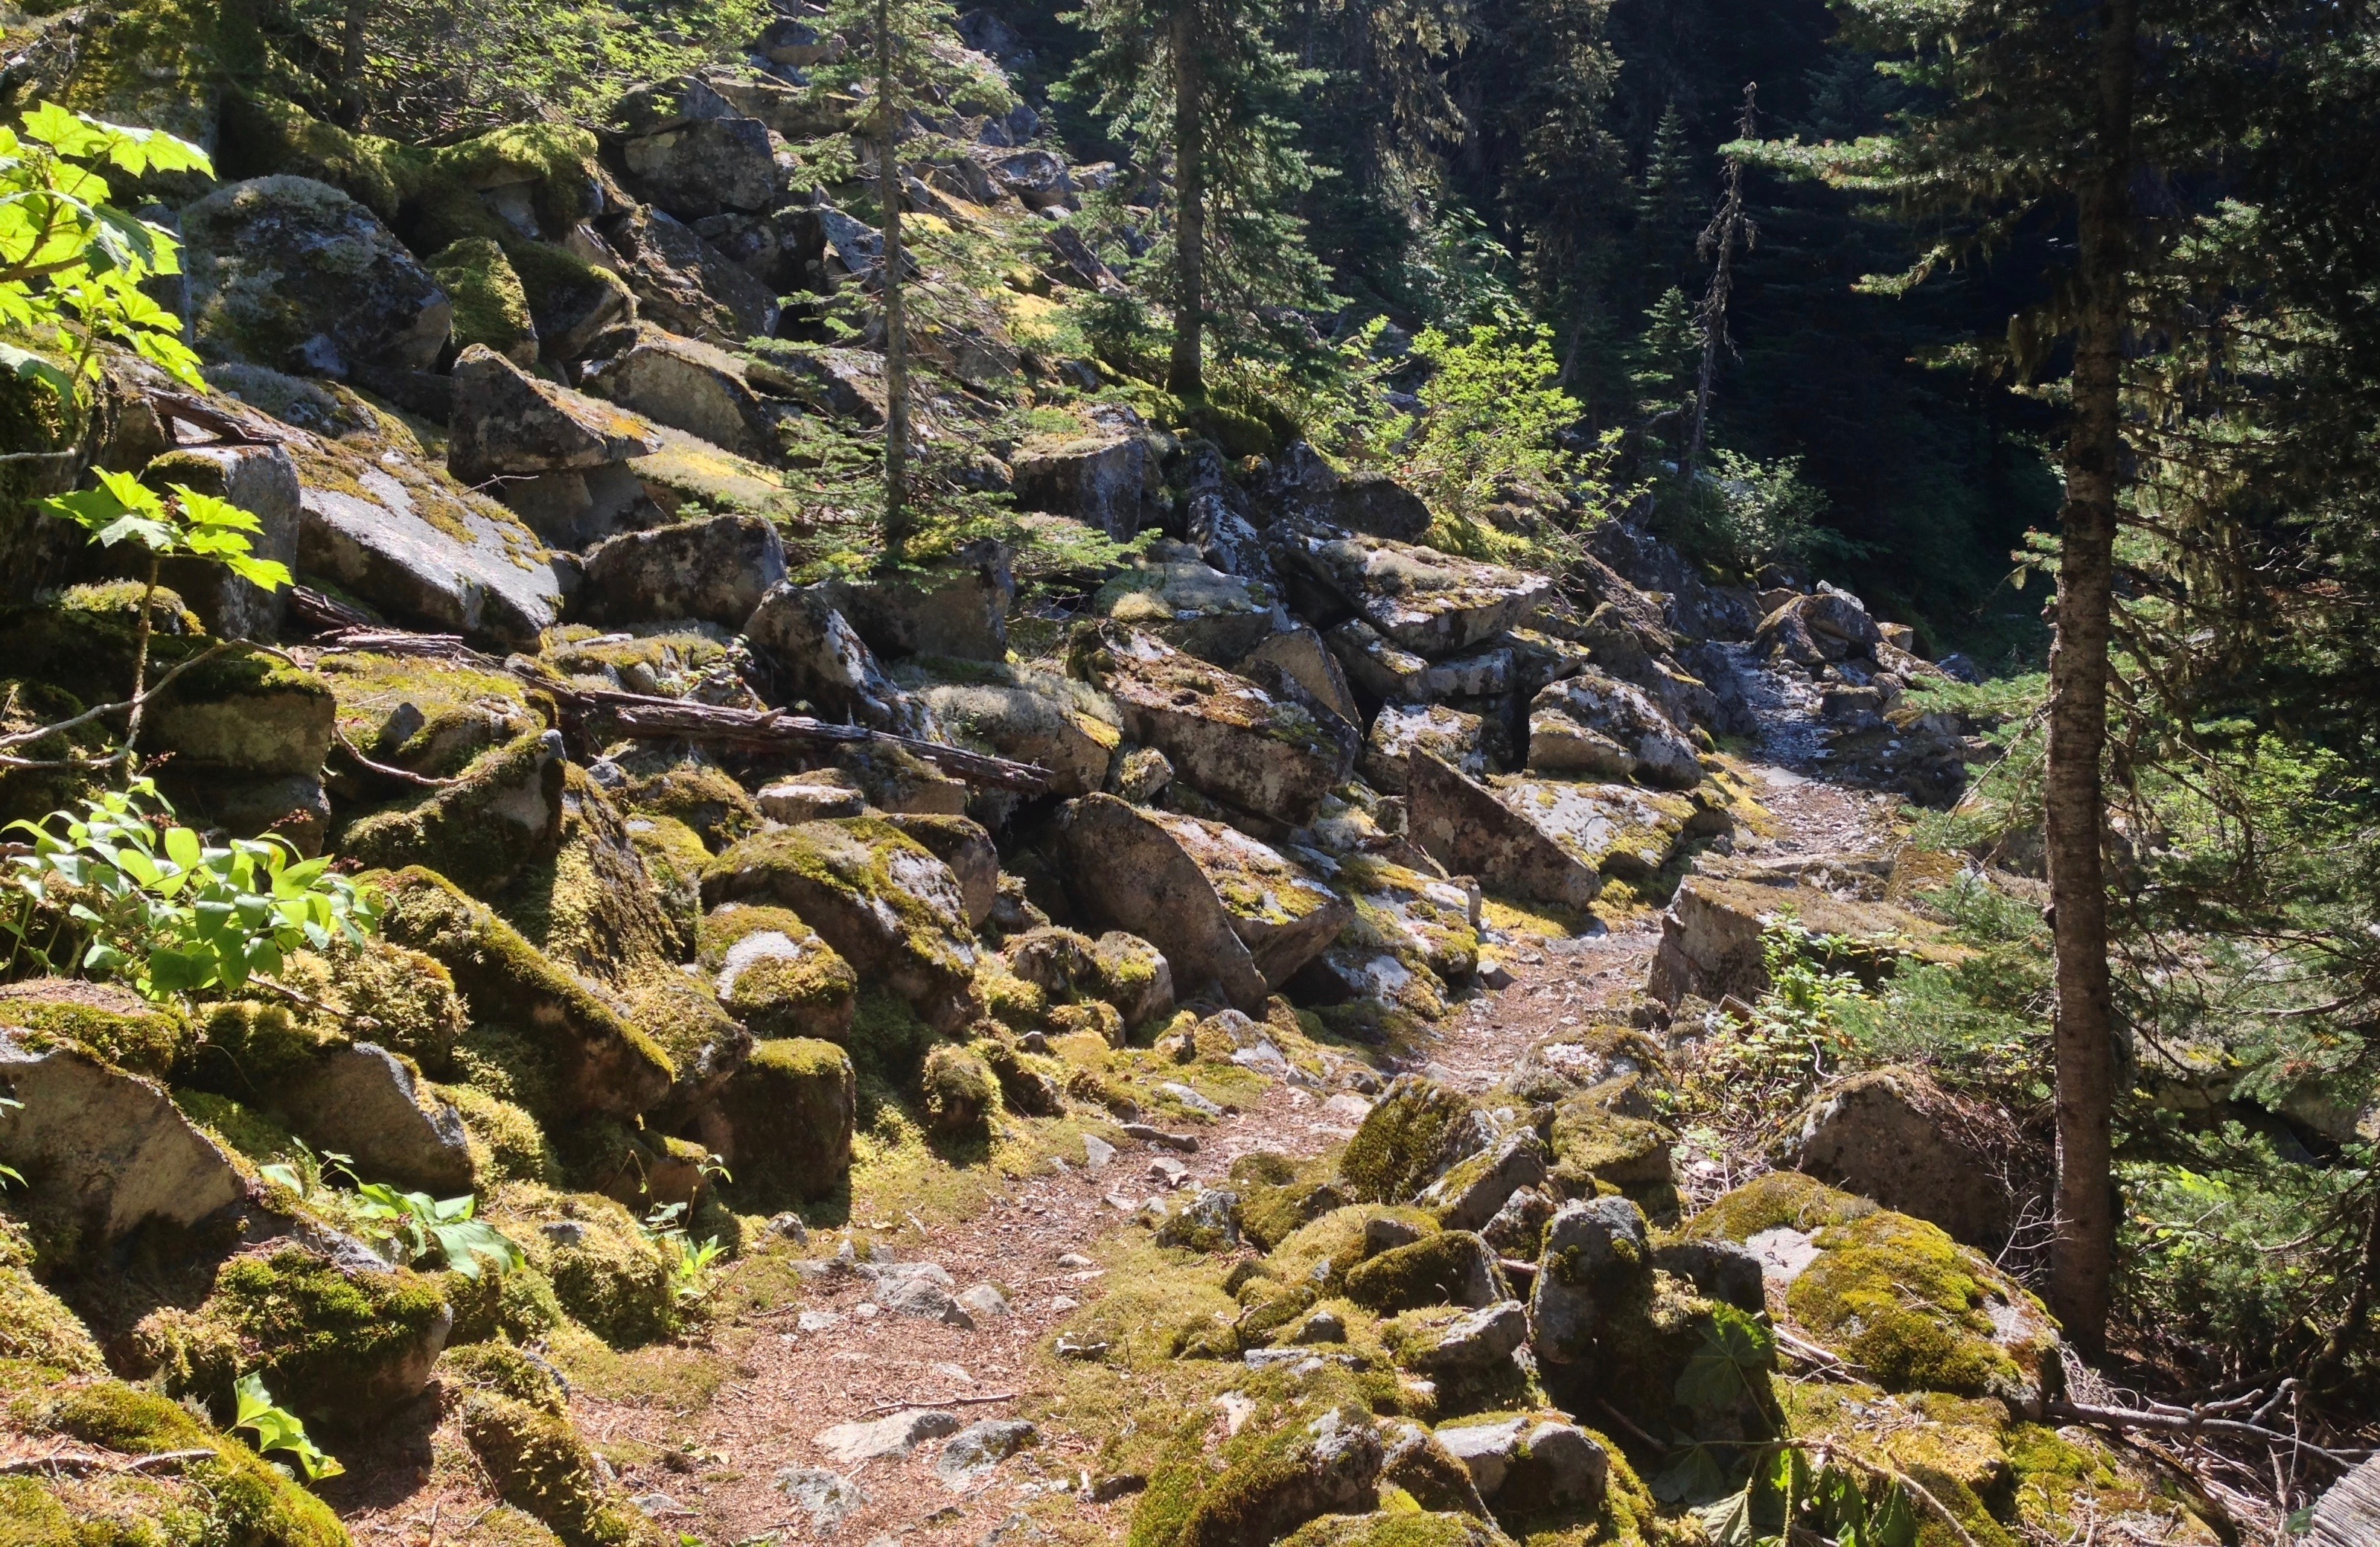 Jumbled heaps of boulders part the forest along the trail's upper reaches, although it is consistently rocky throughout much of its distance. Melakwa - Pratt Lake Traverse, August 03, 2014.